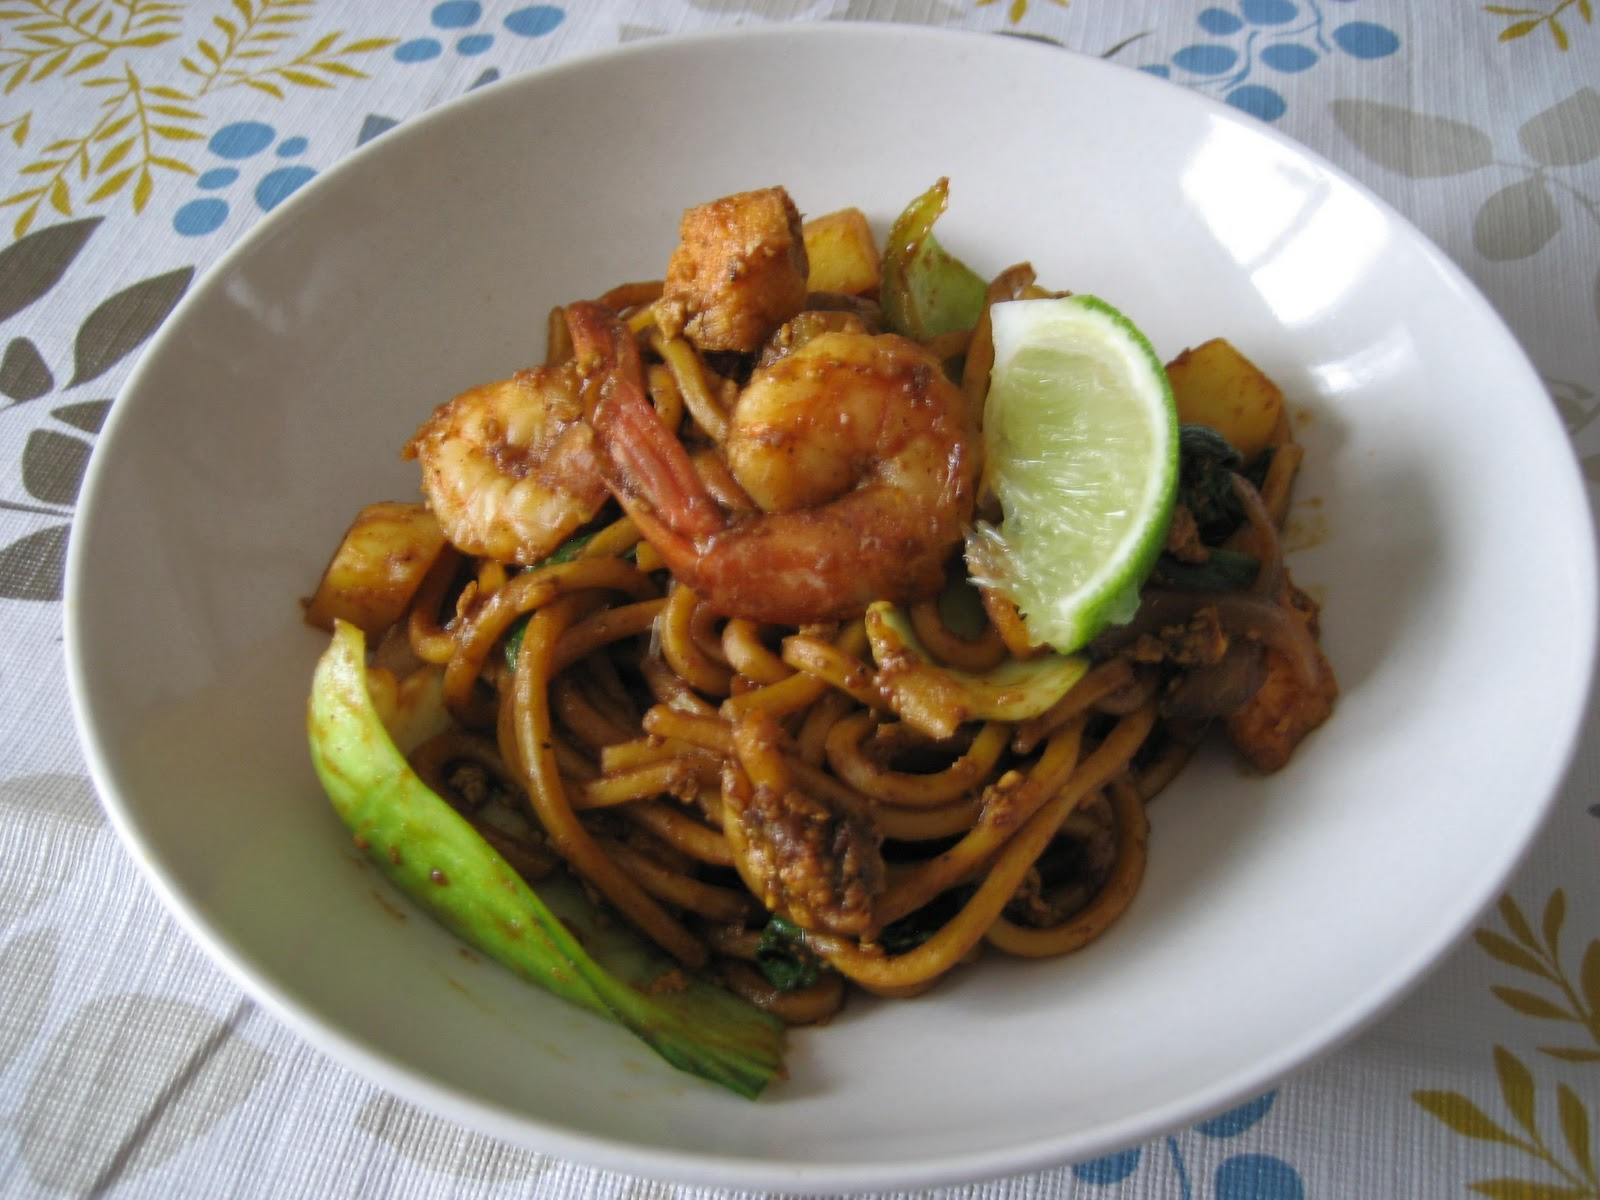 Spice Divas: Mamak Style Mee Goreng (Malaysian-Indian Fried Noodles)